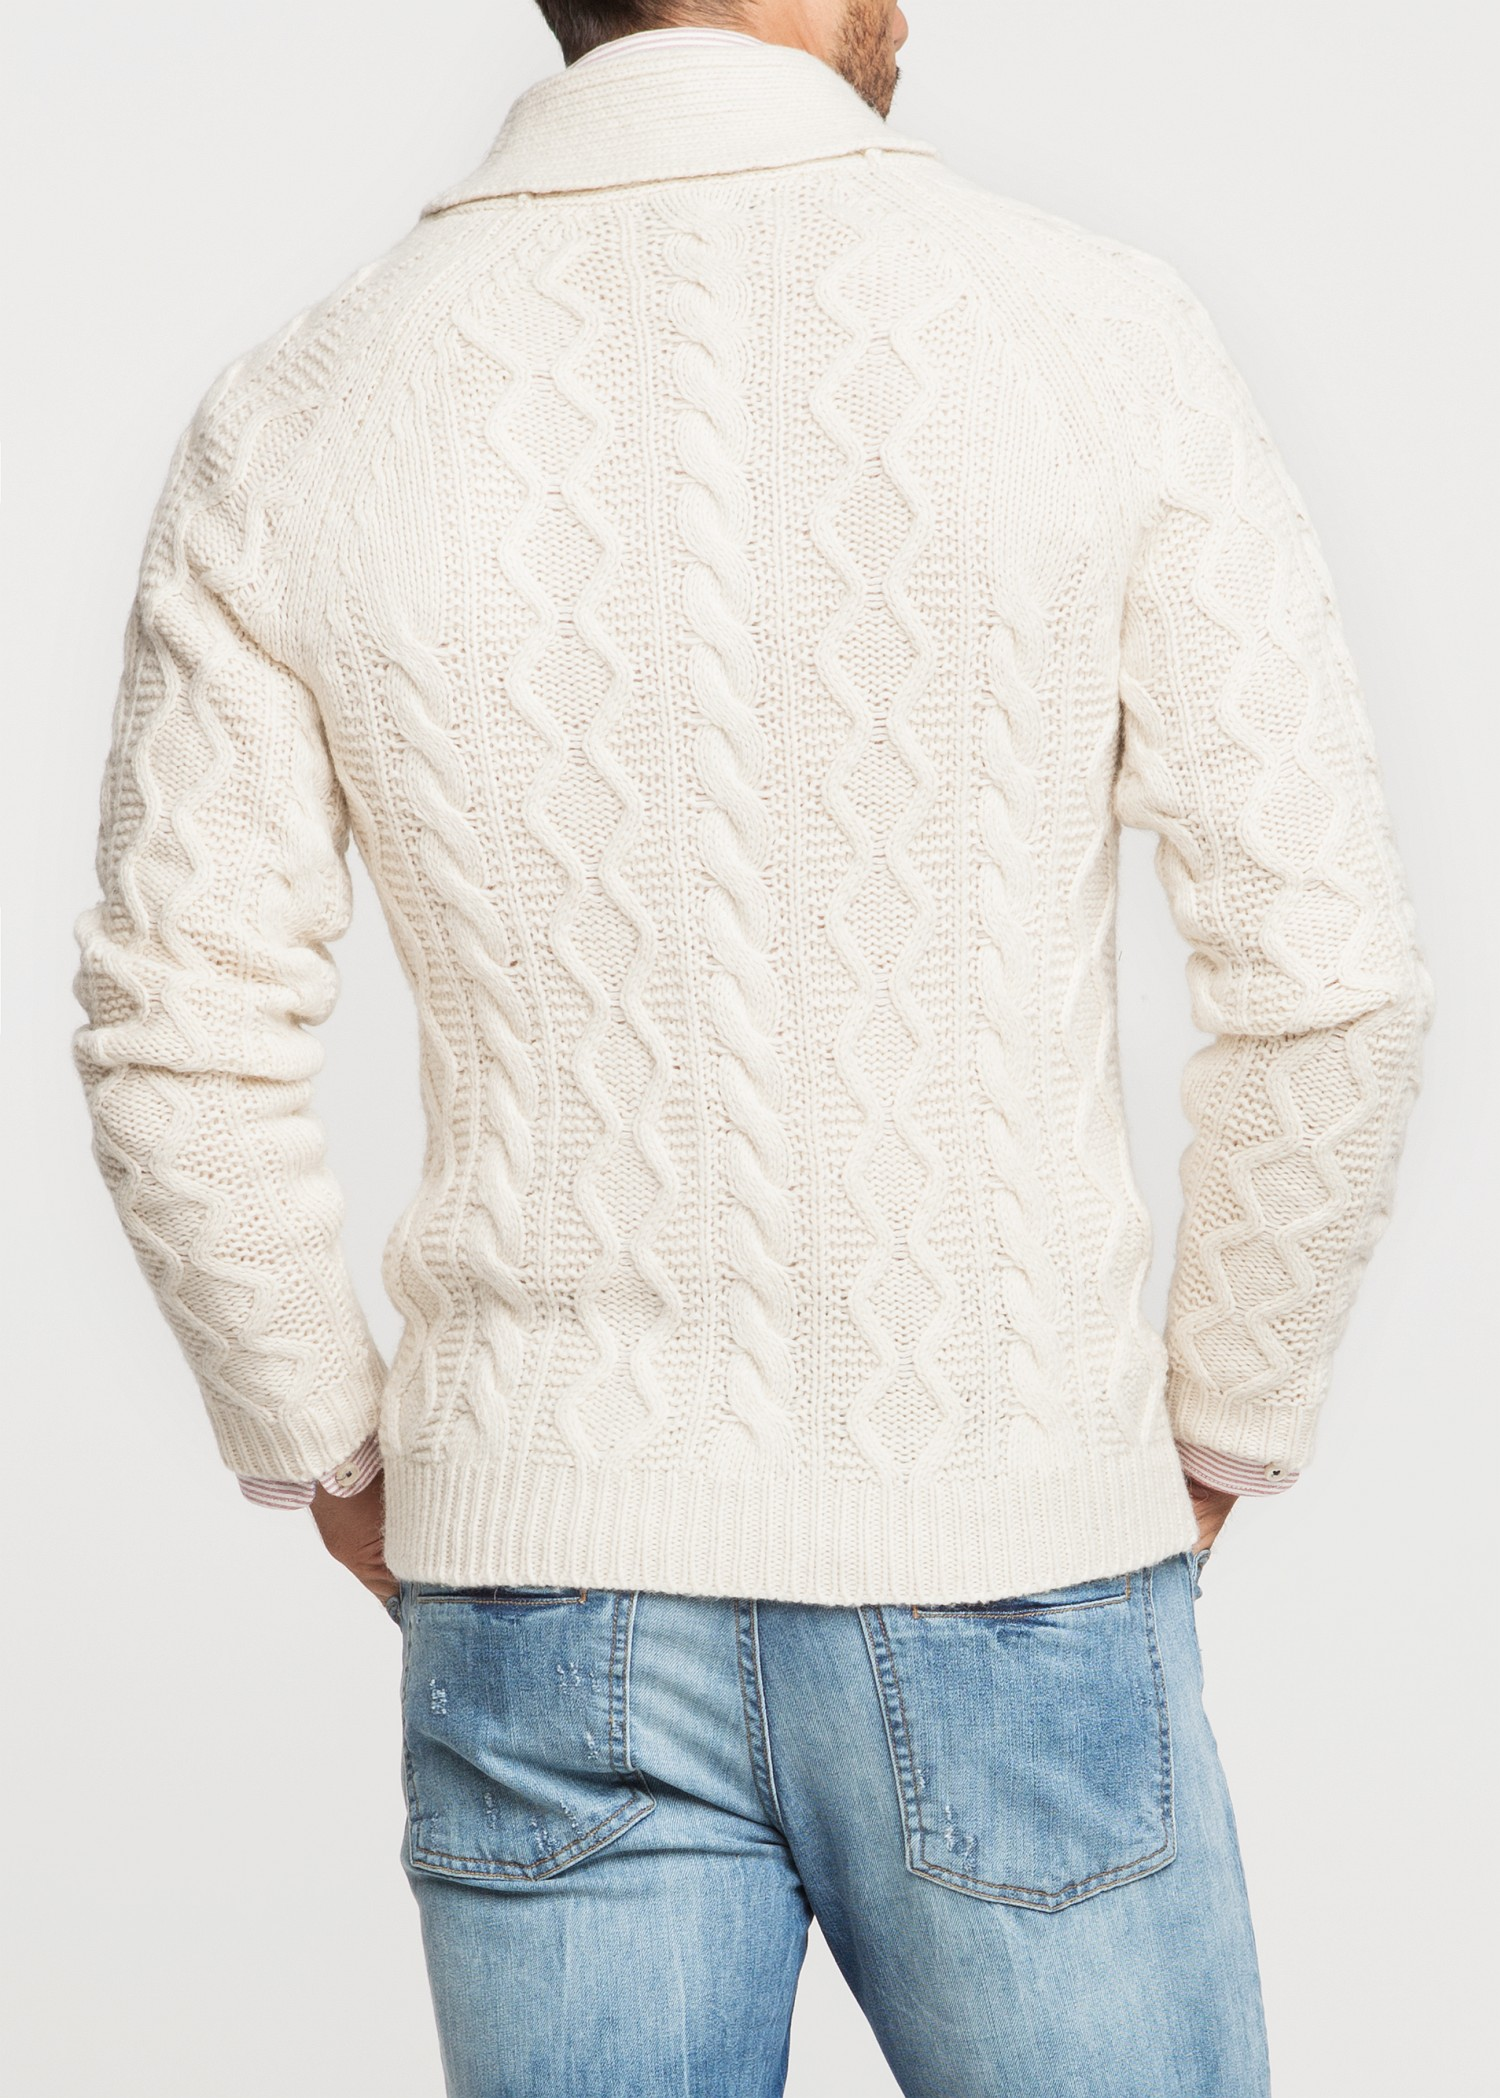 Mango Shawl Collar Cableknit Cardigan in White for Men | Lyst